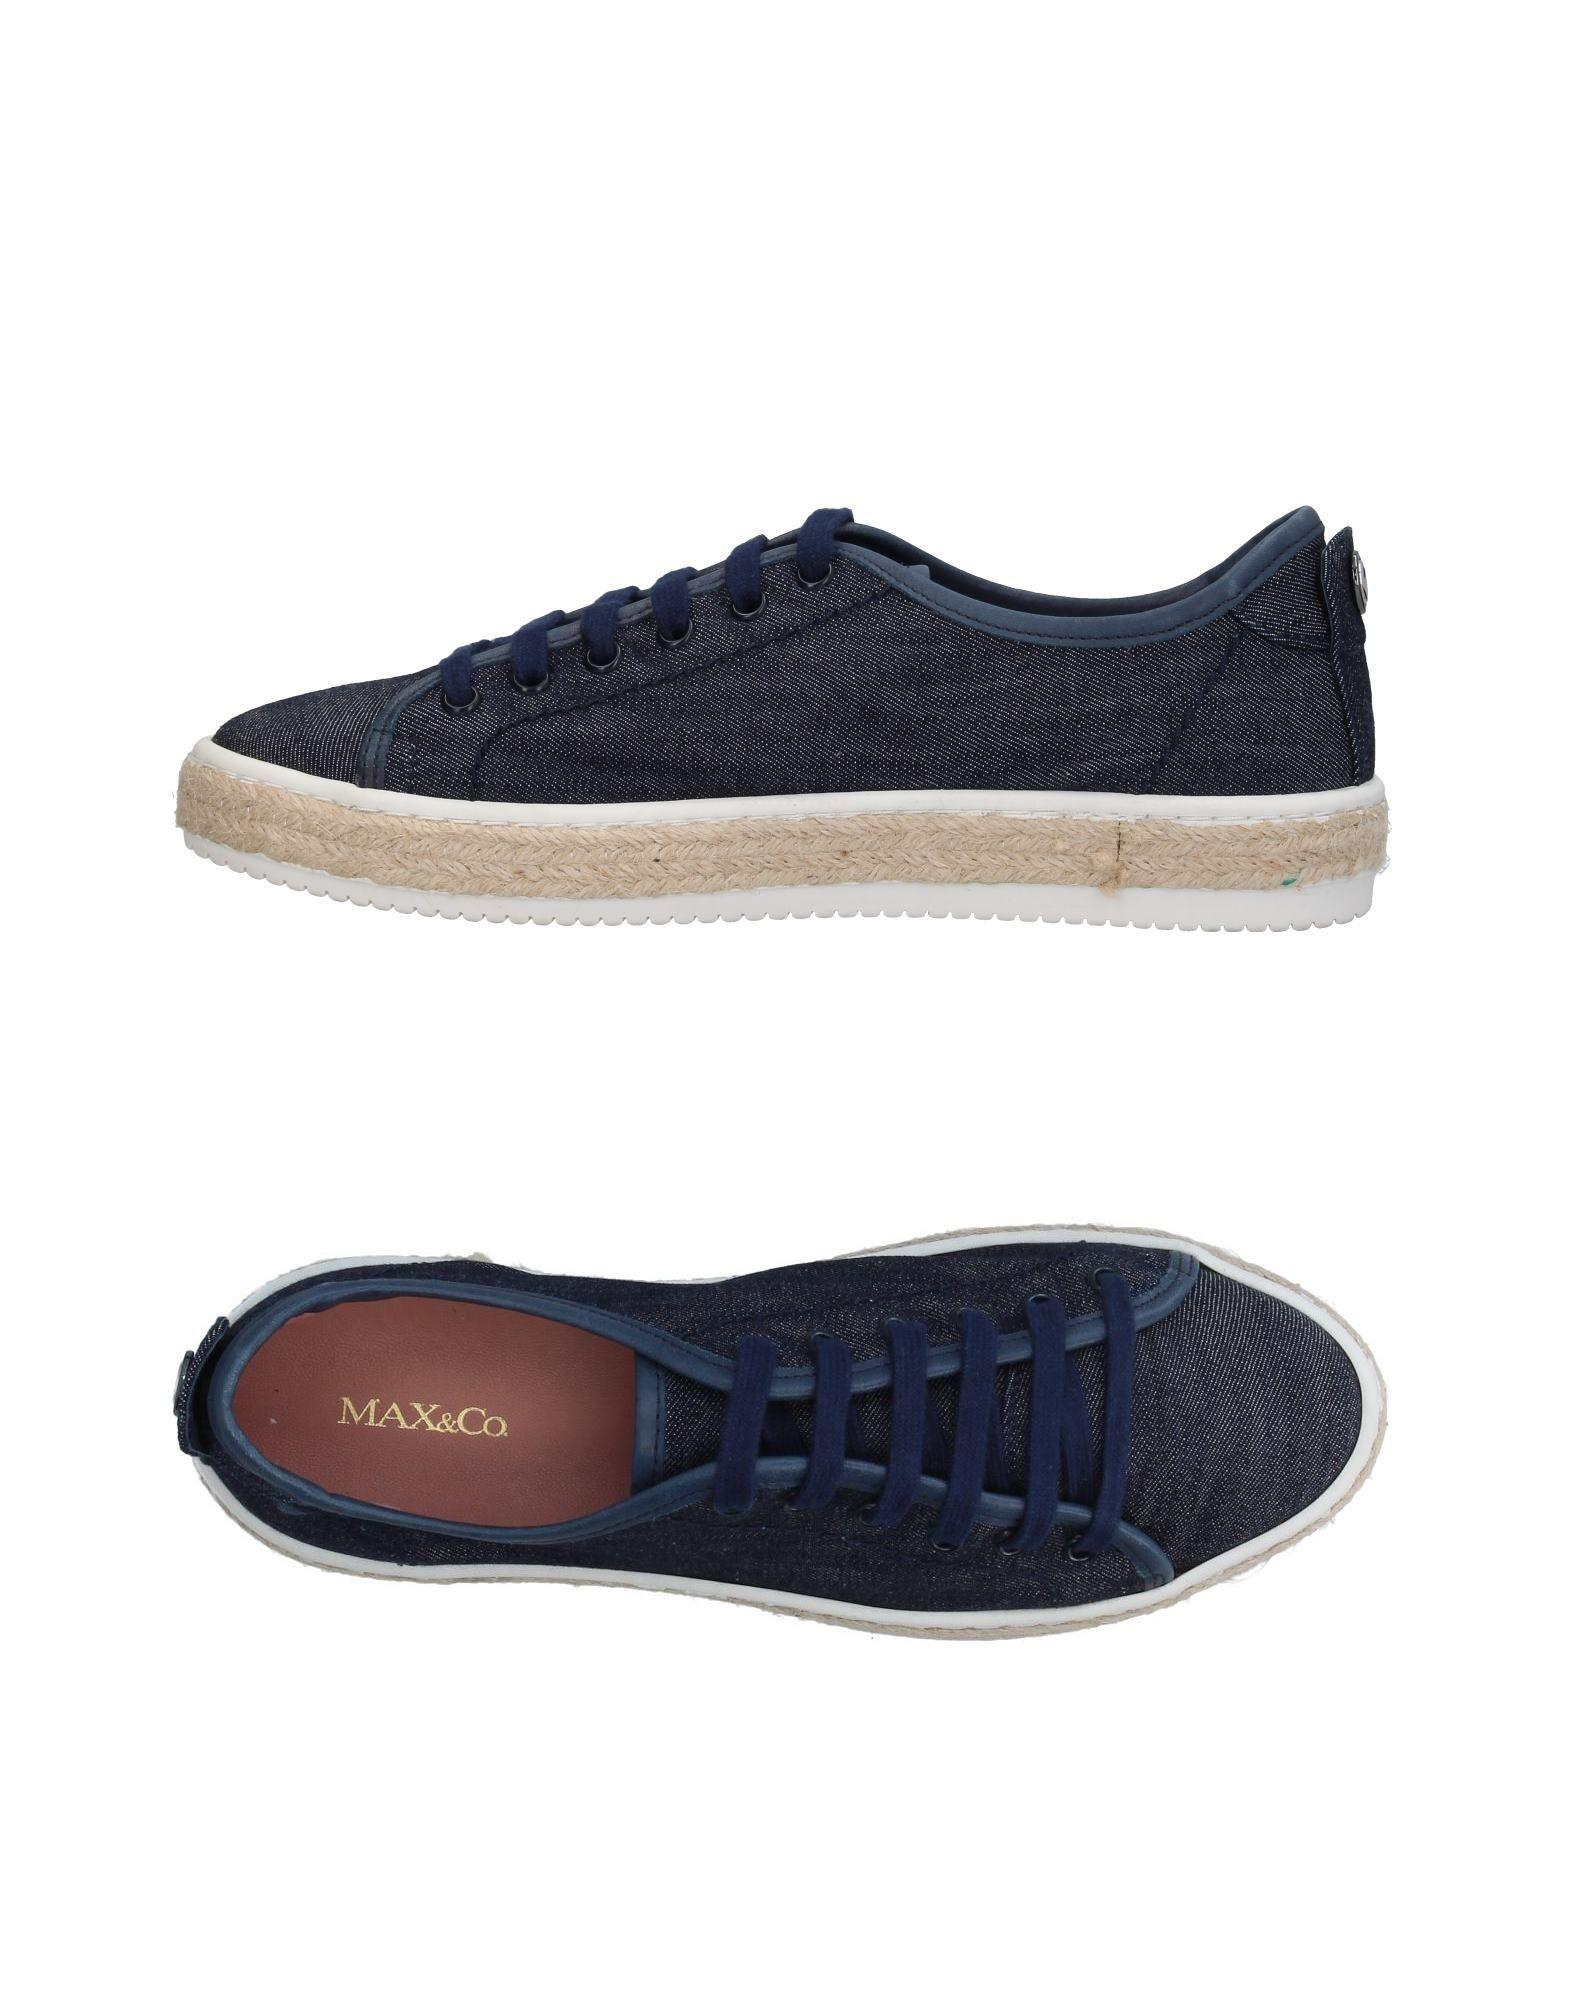 Max & Co. Max & Co. Low-tops & Sneakers Bas-tops Et Chaussures De Sport VSmVYbGz